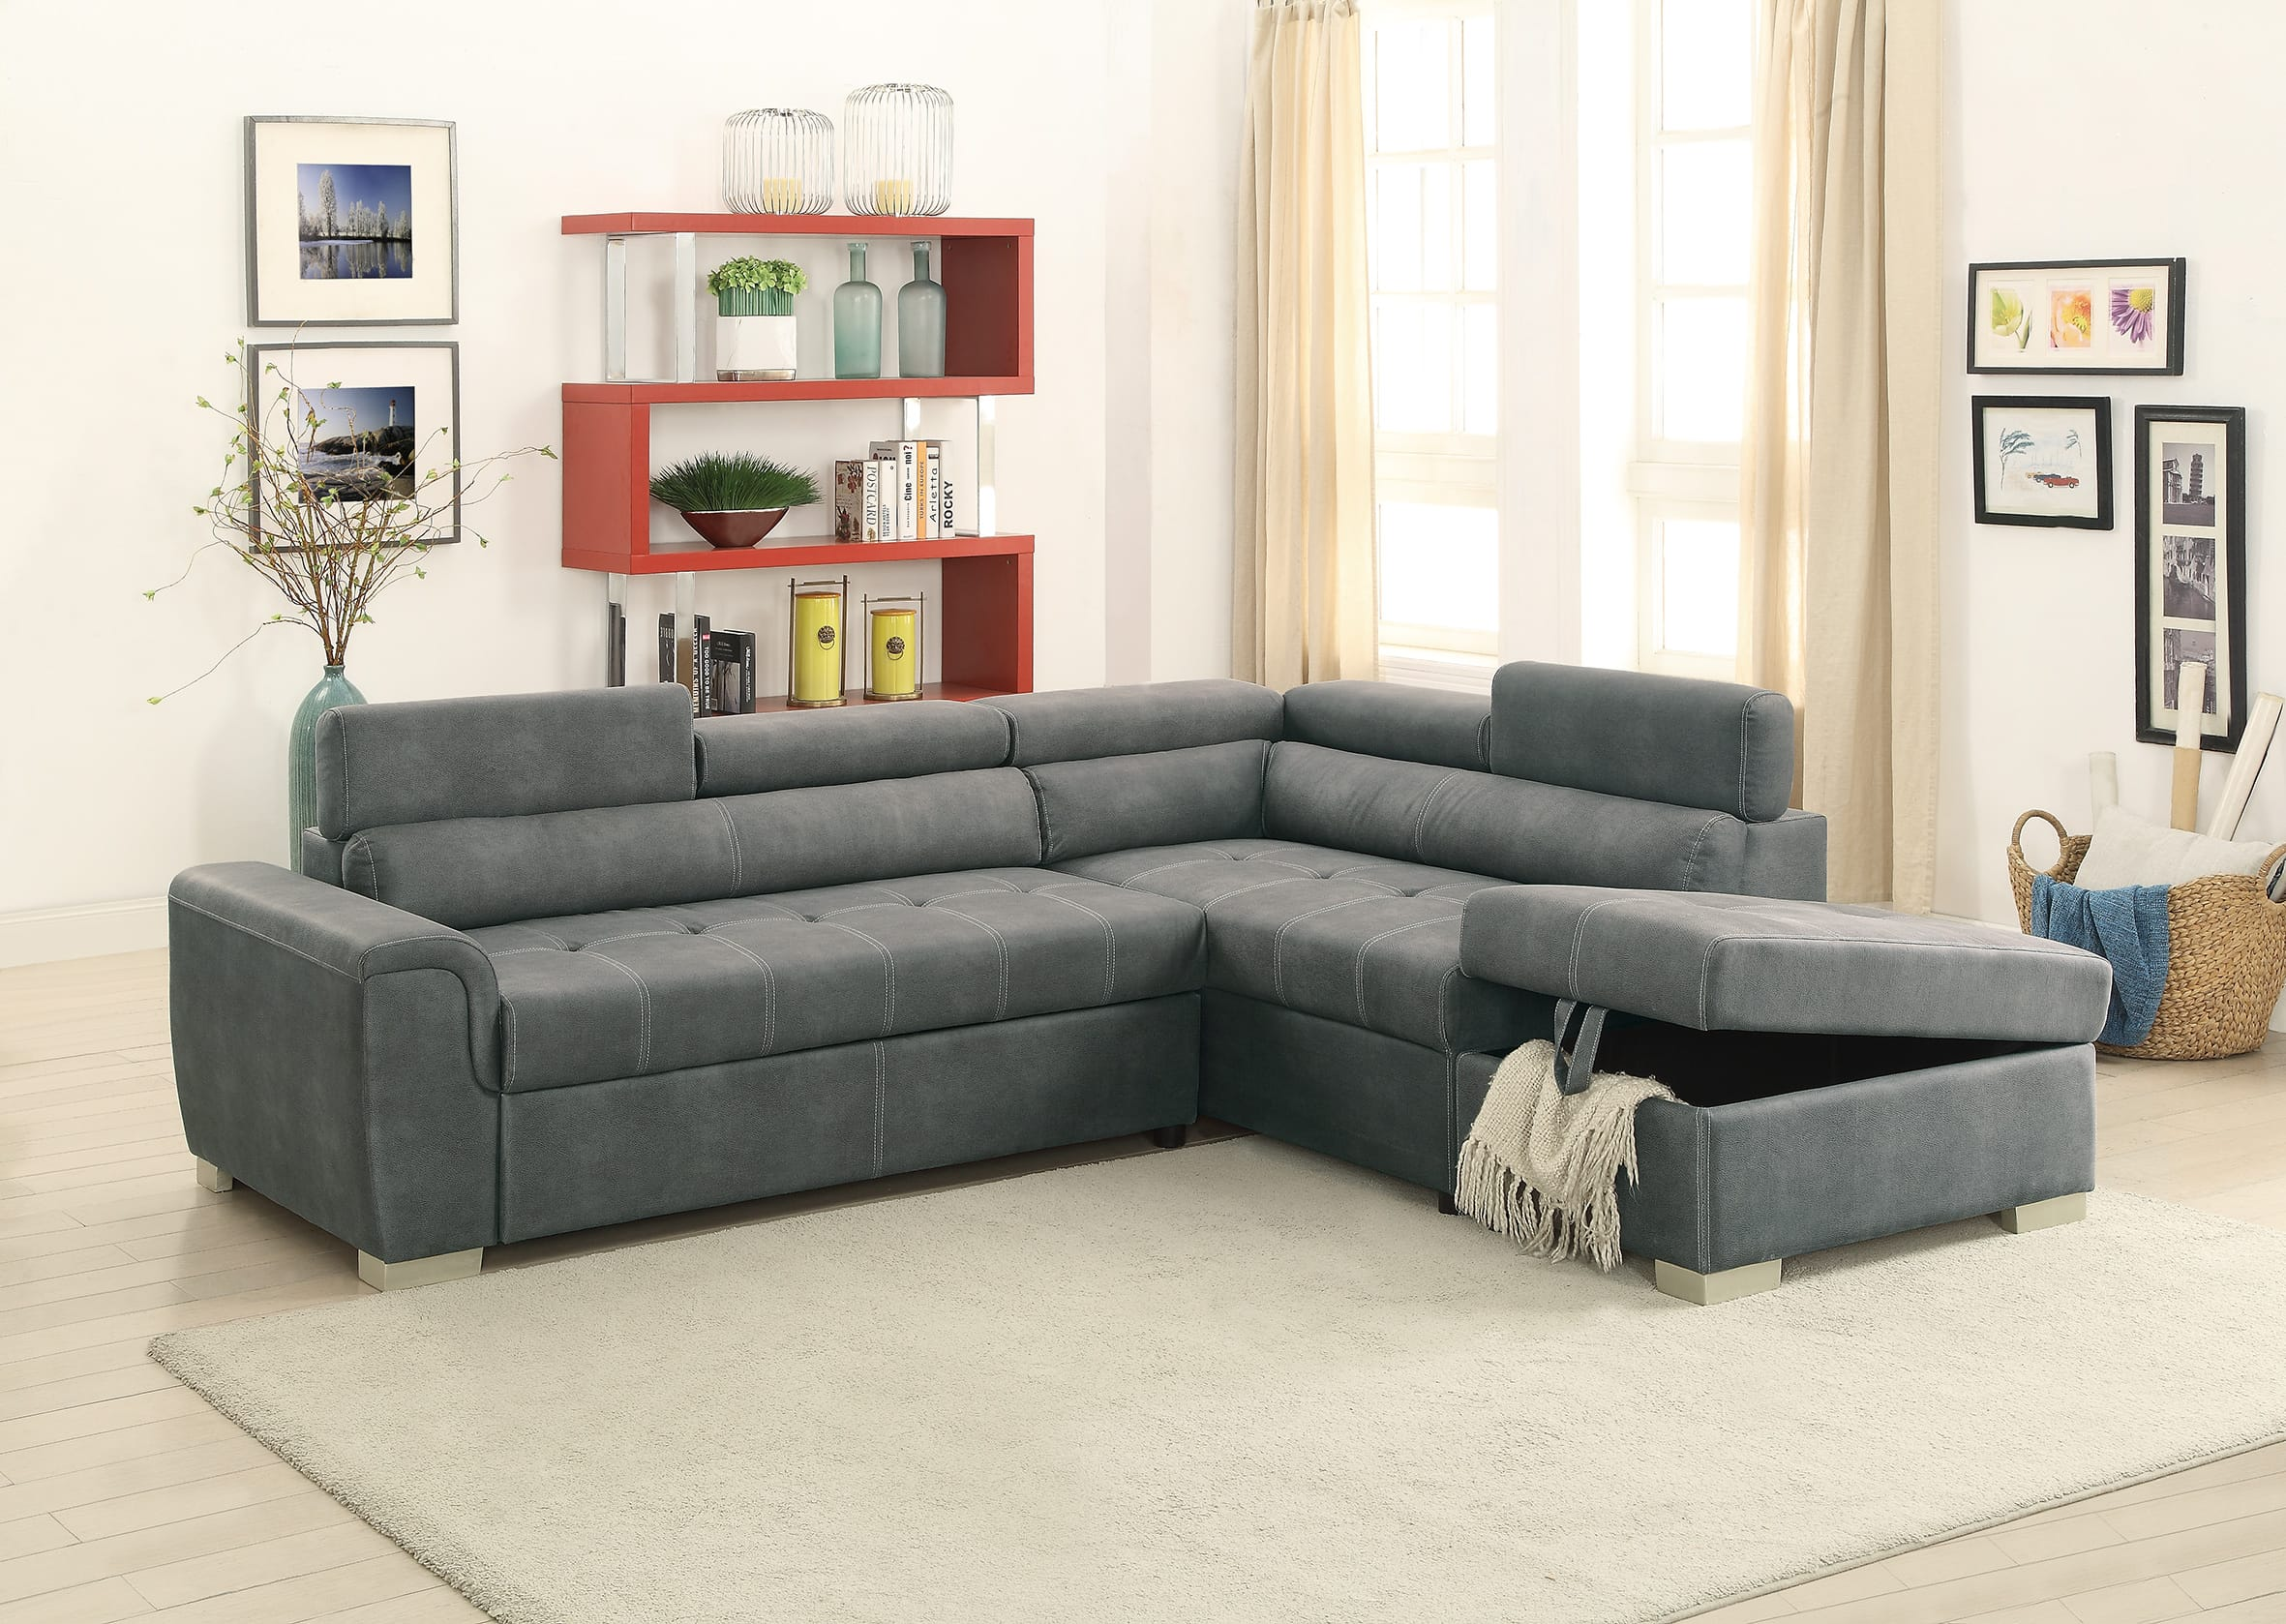 F6550 Slate Gray Convertible Sectional Sofa Set by Poundex